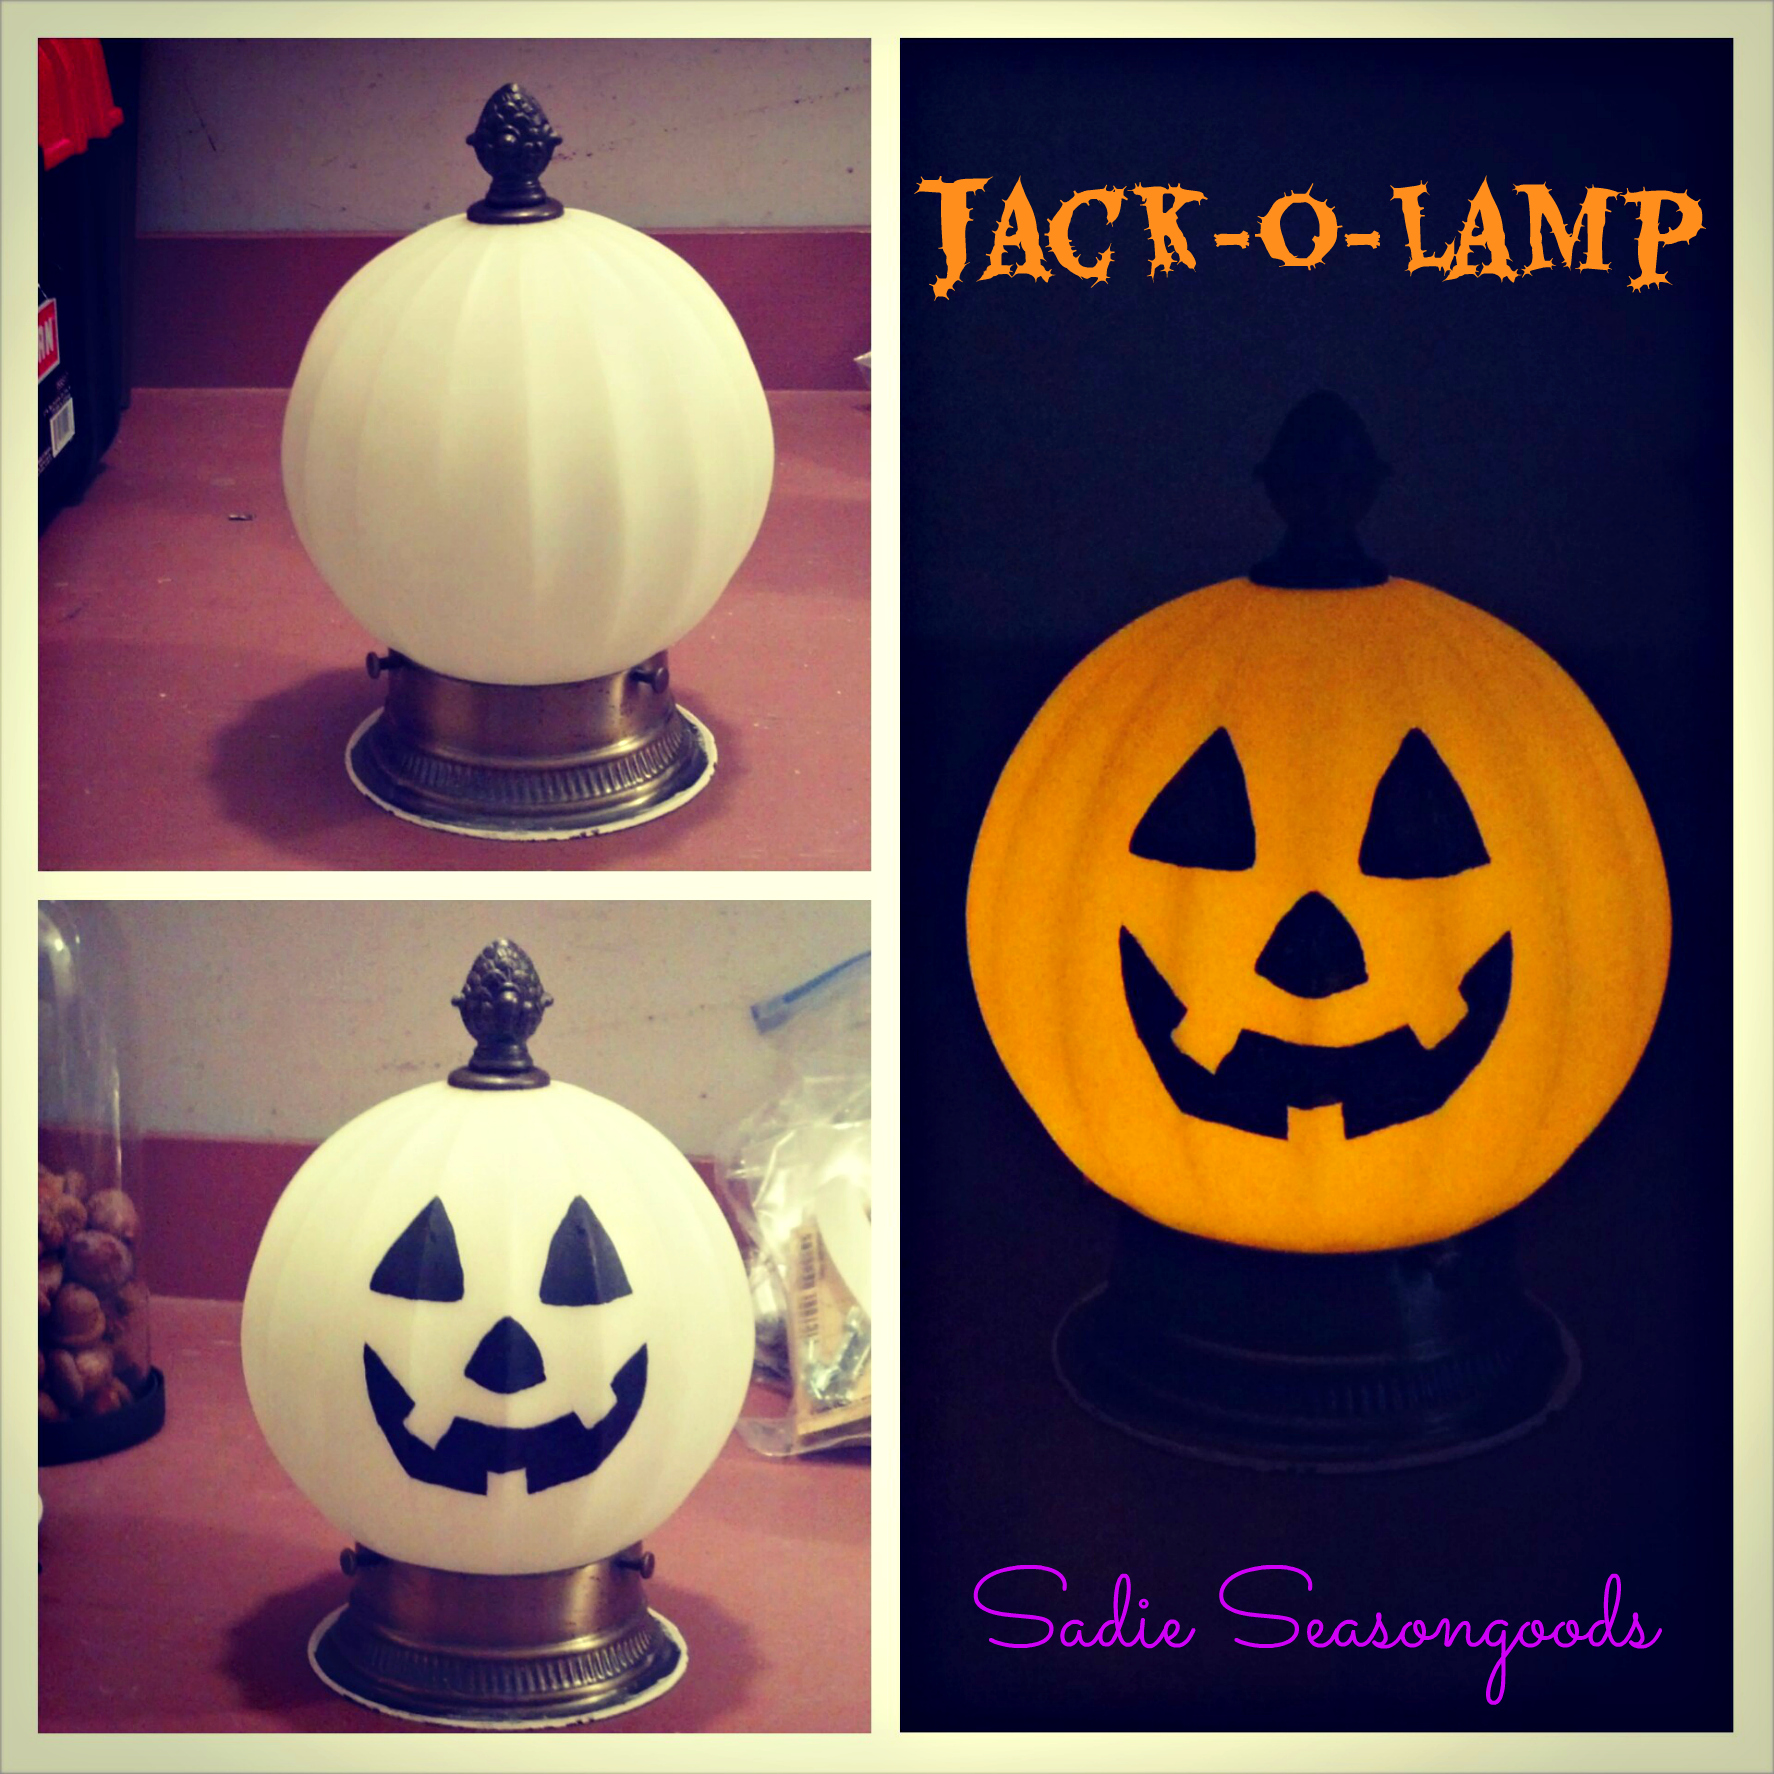 Jack-o-Lamp Salvaged Light Fixture Pumpkin from Sadie Seasongoods